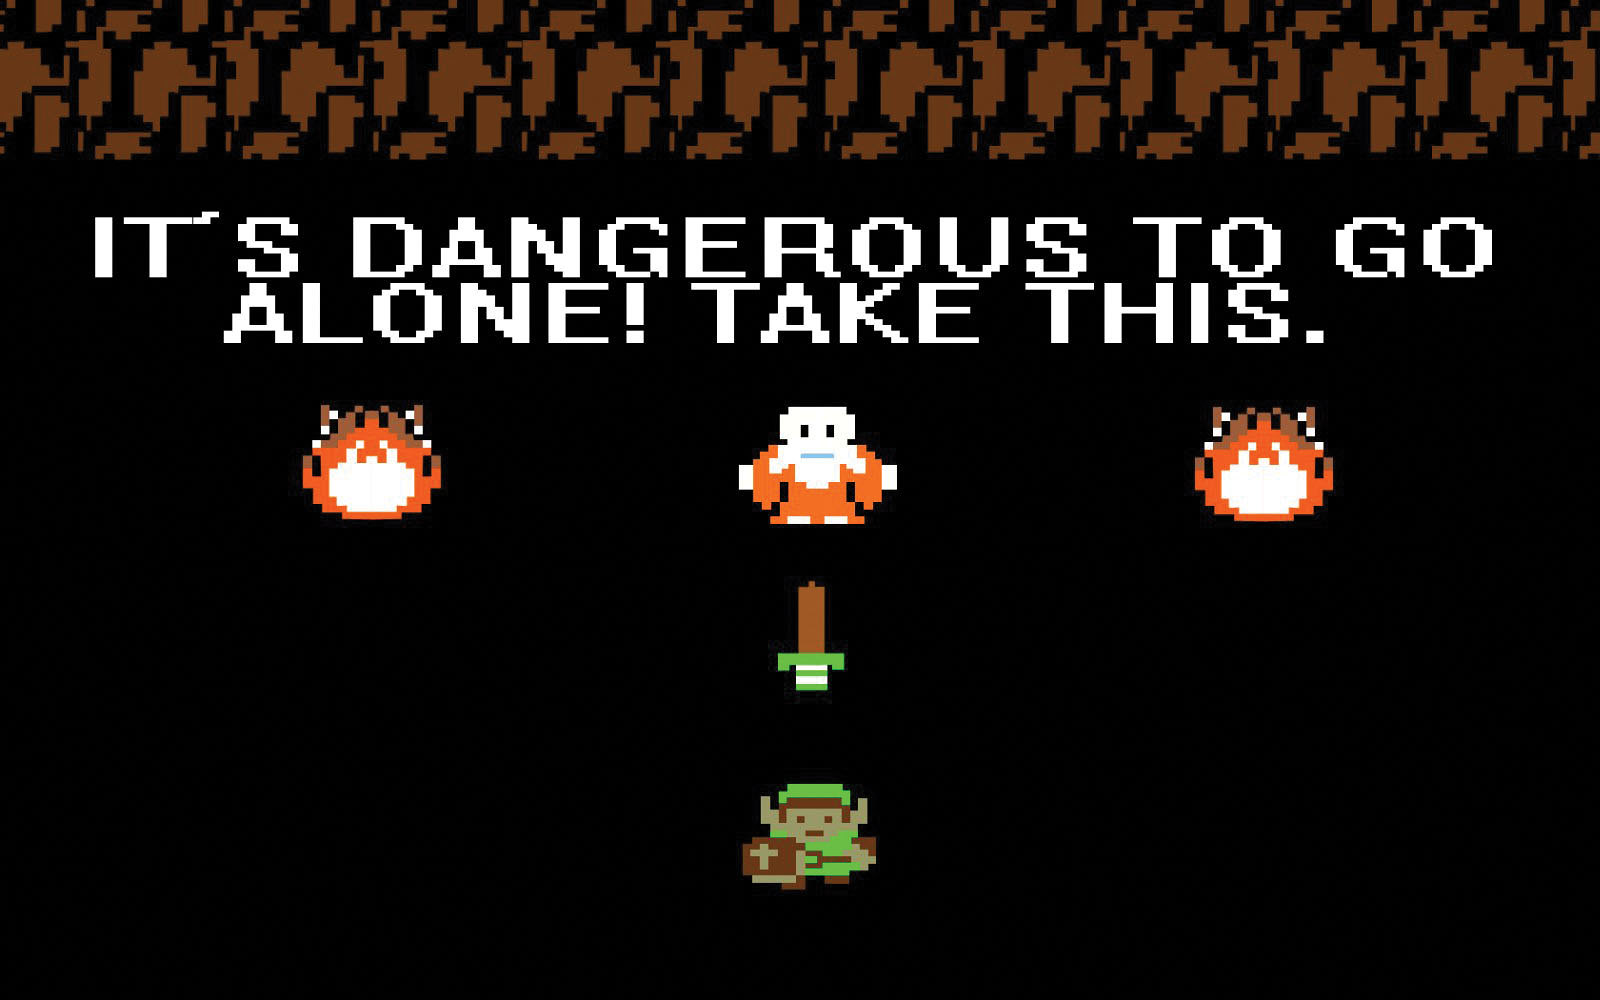 A screen from The Legend of Zelda where Link receives his sword from an old man saying 'It's Dangerous To Go Alone! Take This.'